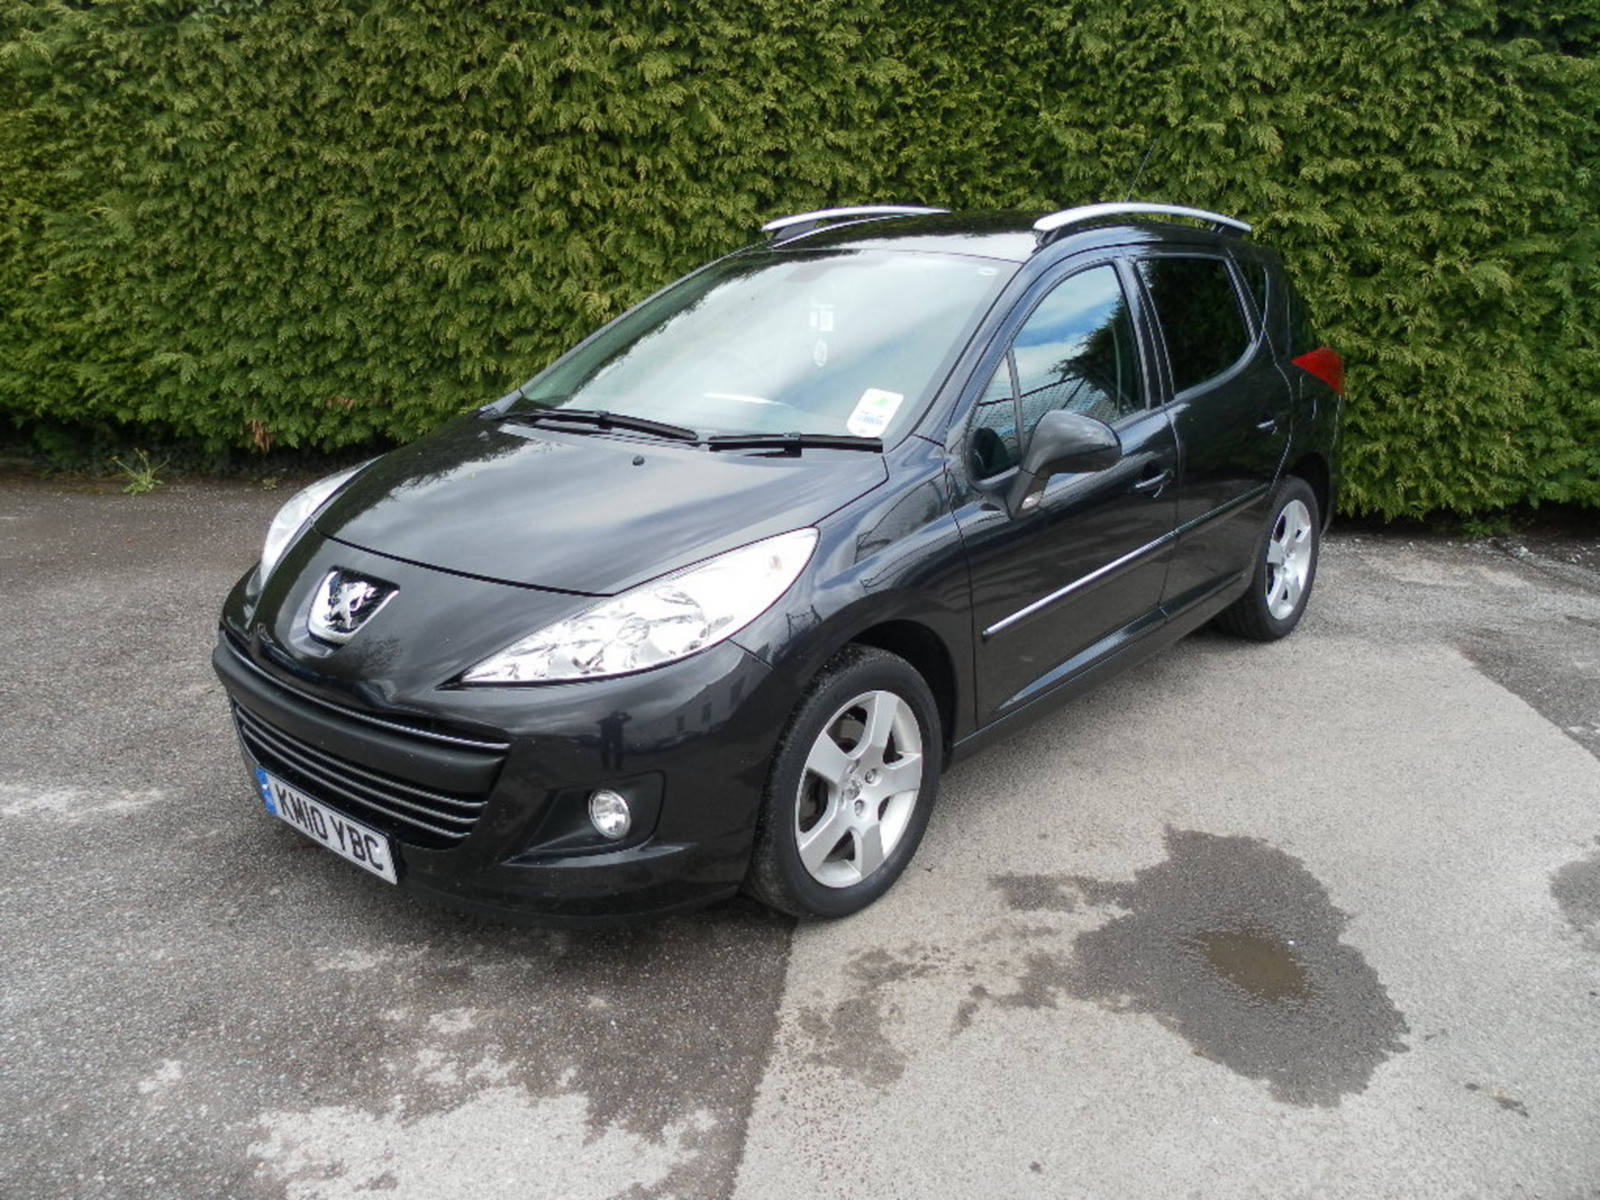 2010 Peugeot 207 SW Sport 5 Door